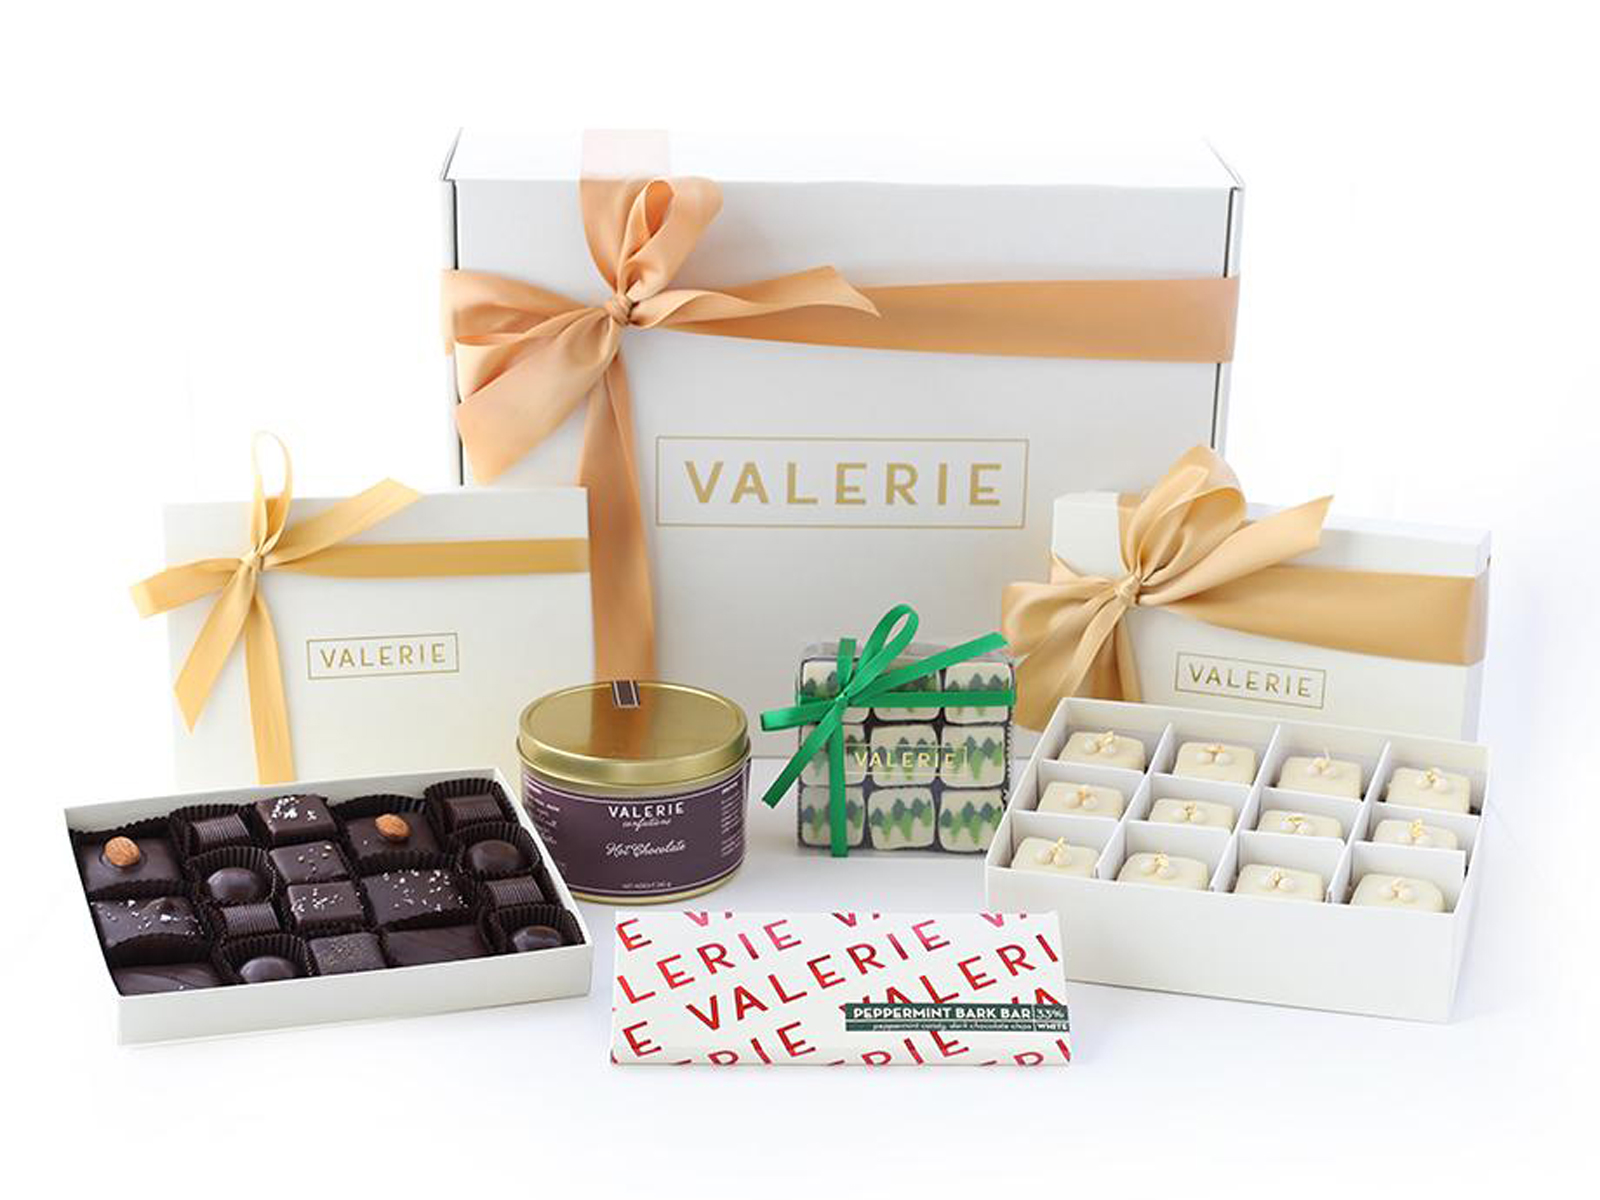 valerie confections gift box